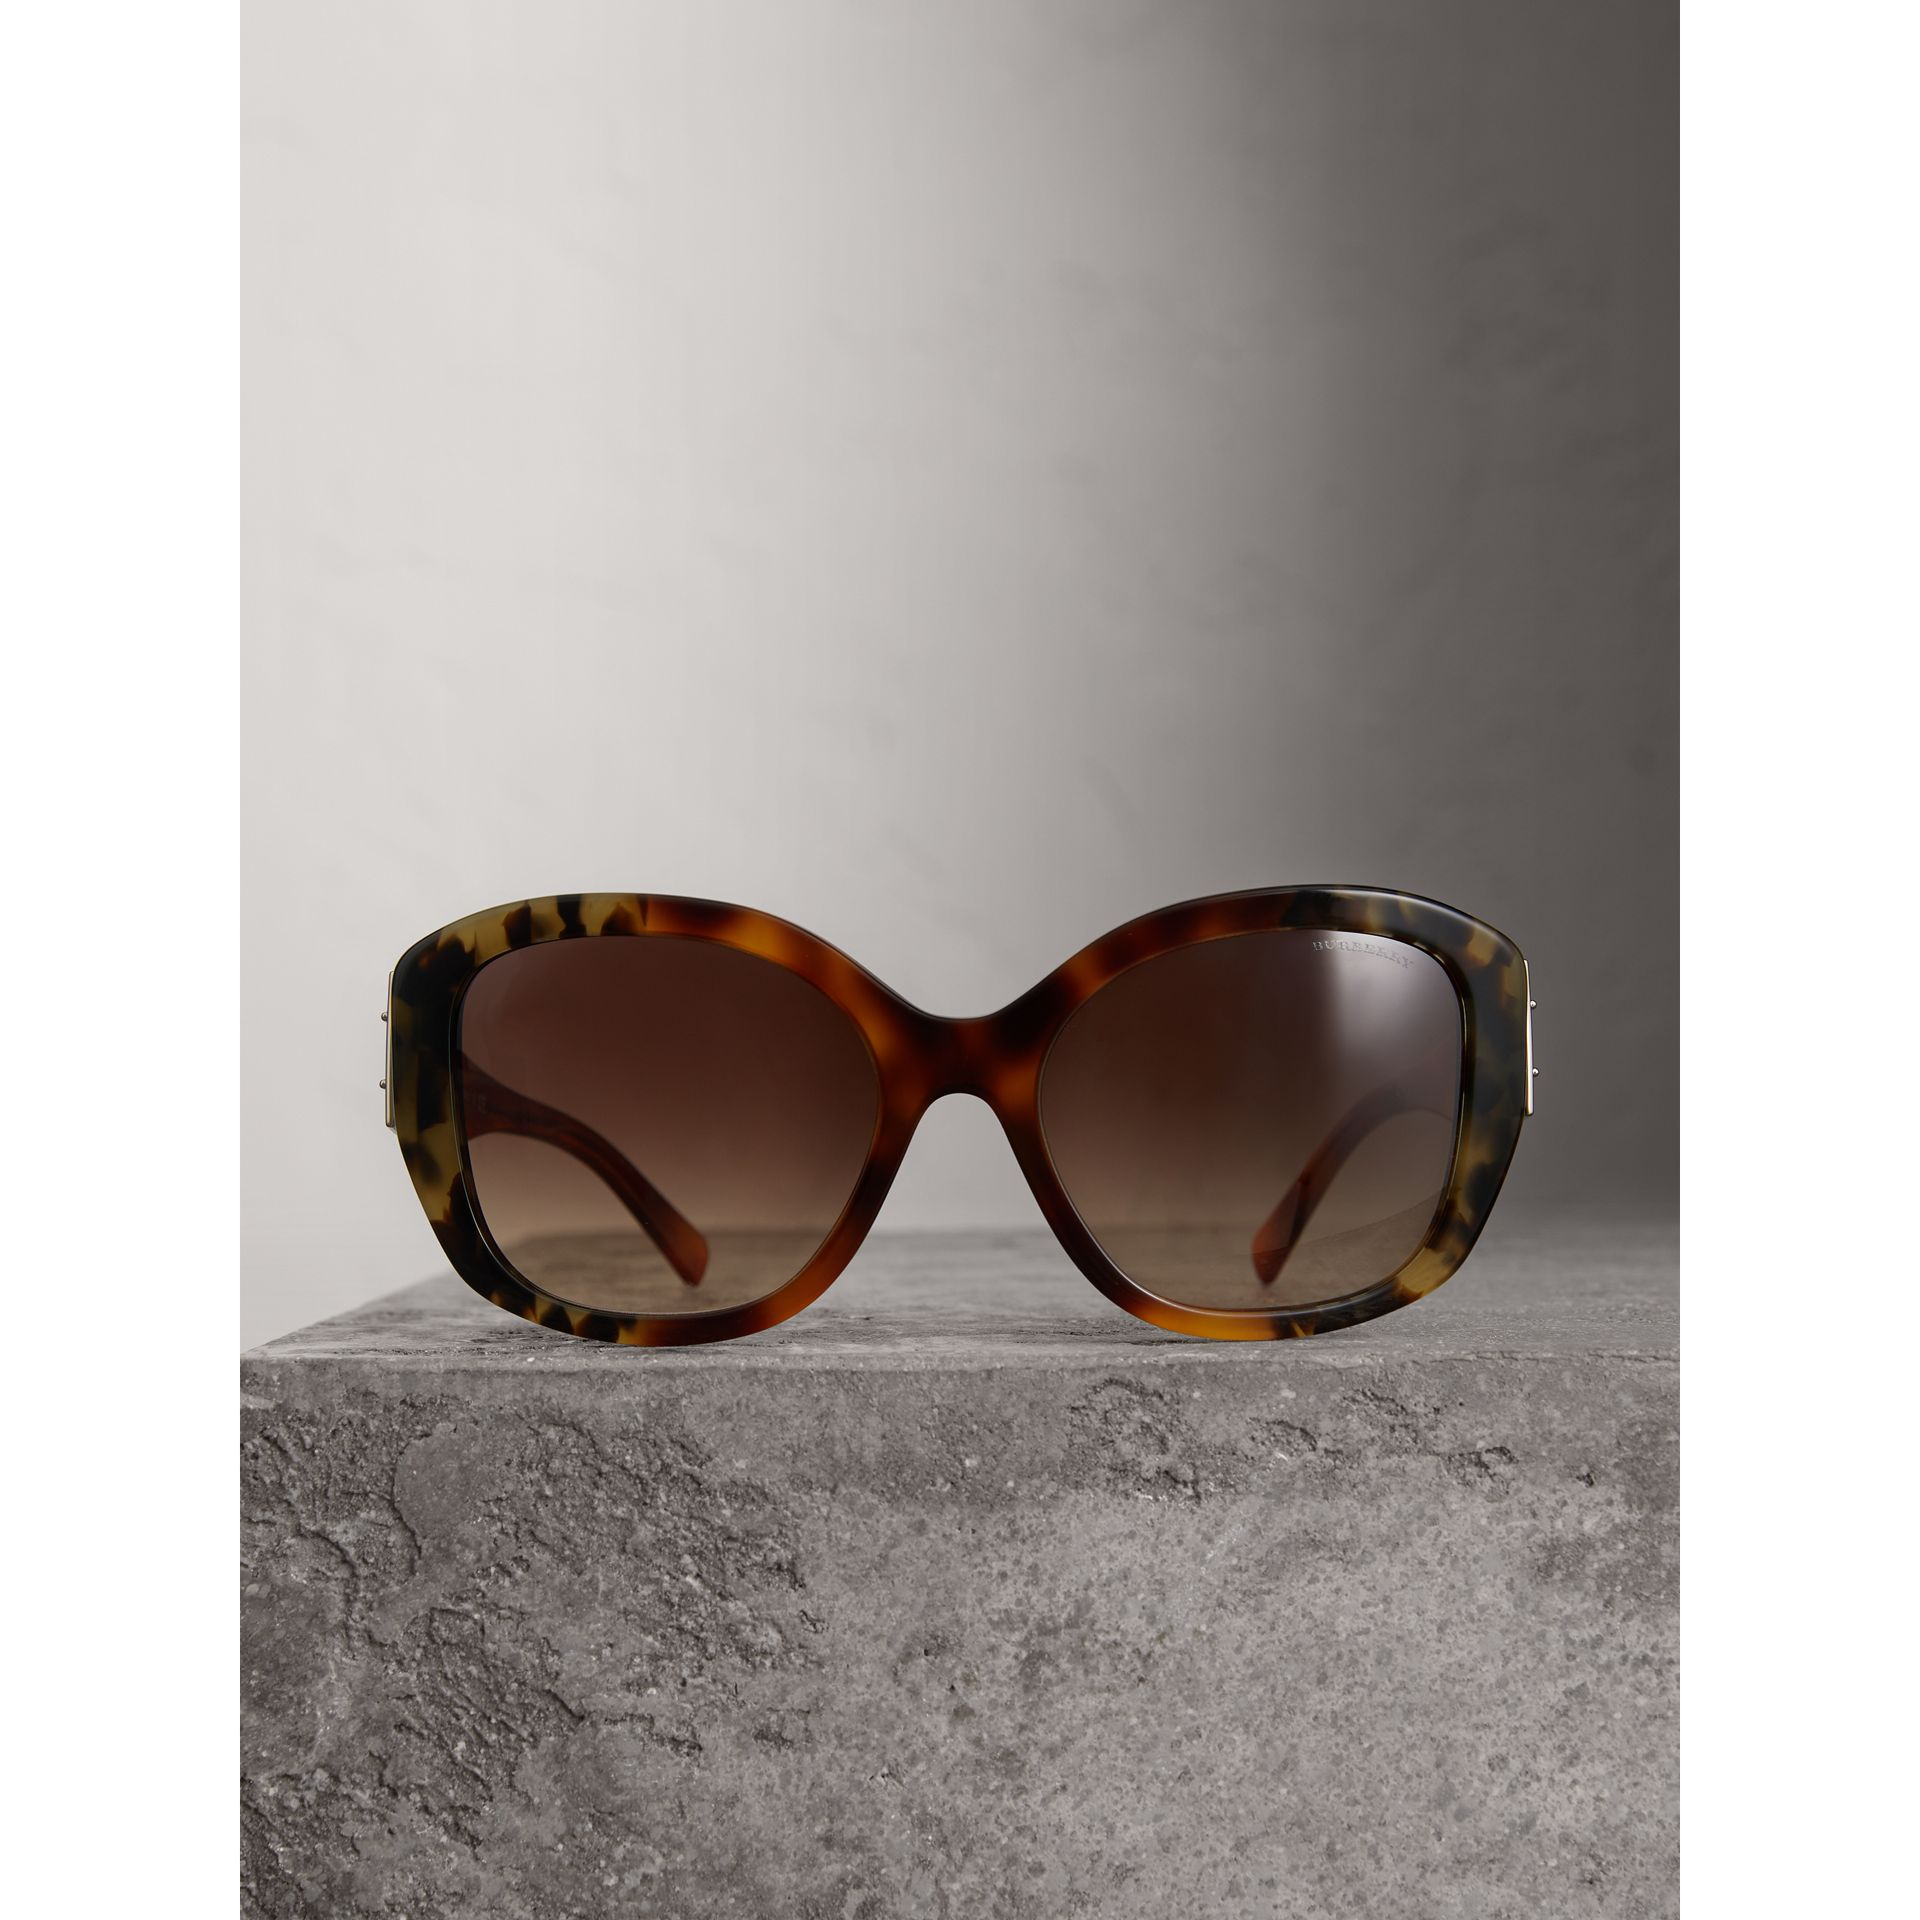 Buckle Detail Oversize Square Frame Sunglasses in Dark Ochre - Women | Burberry Hong Kong - gallery image 4